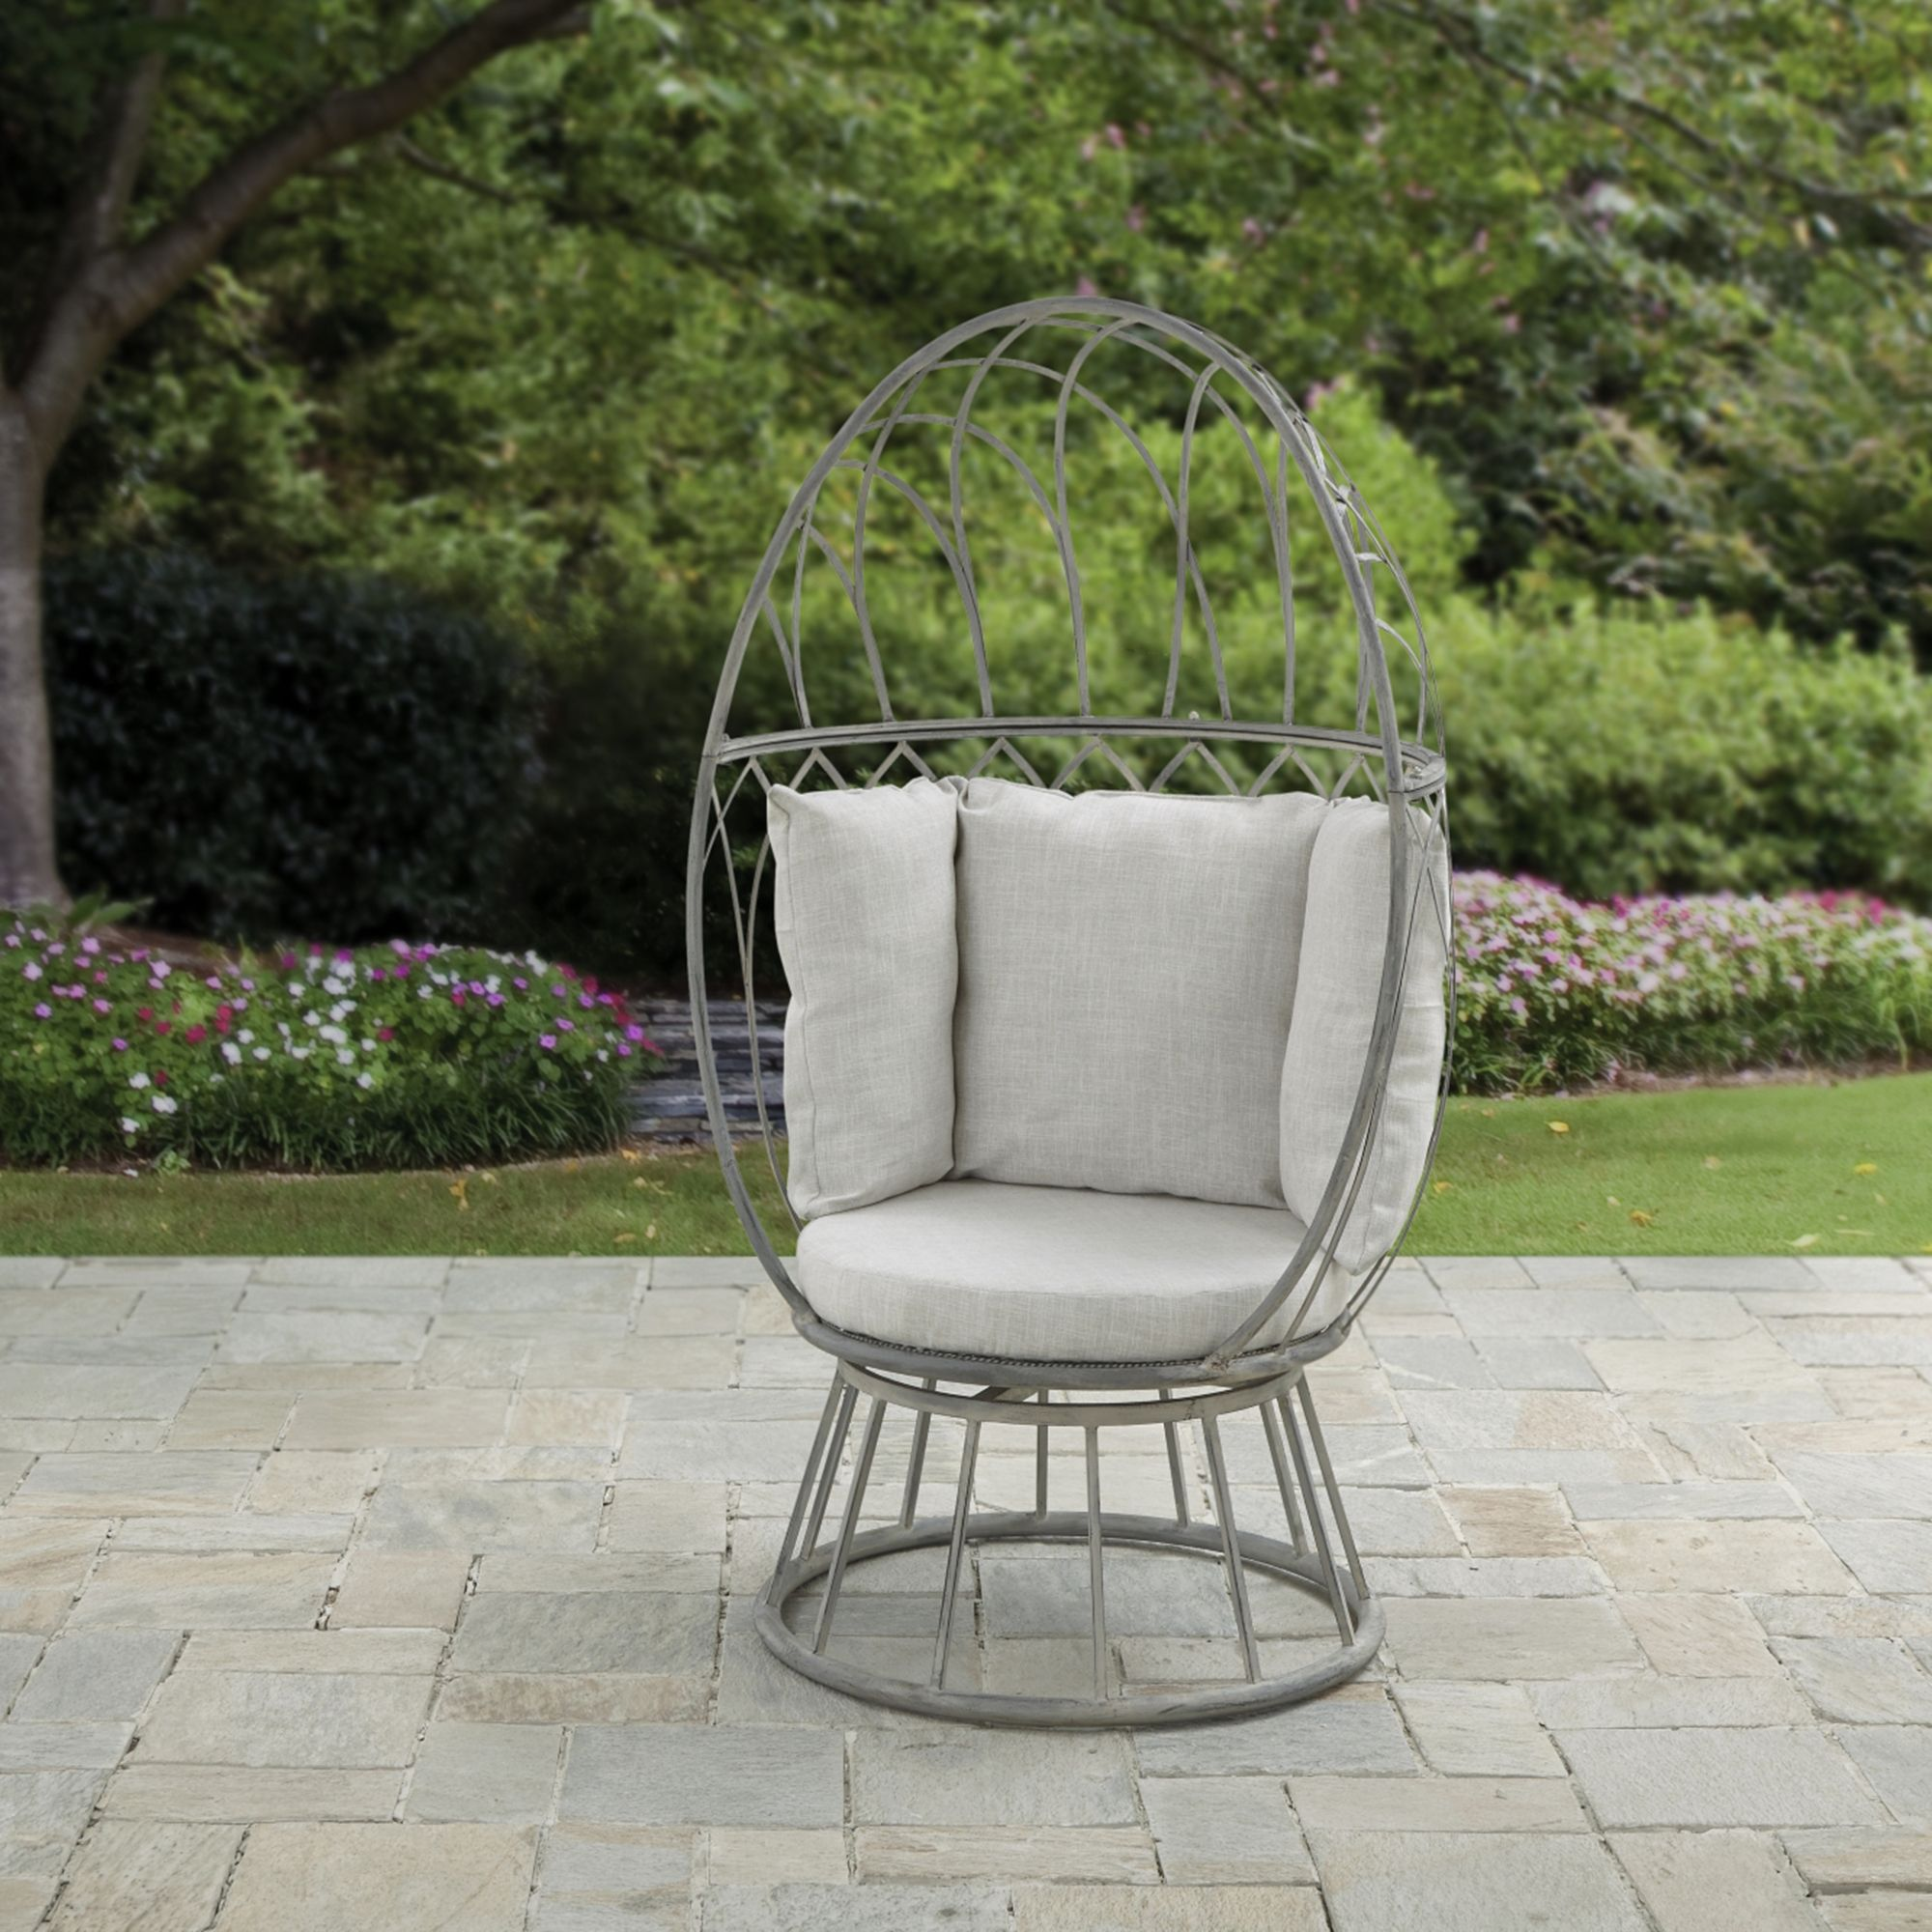 Florence Grey Swivel Chair Grey swivel chairs, Garden